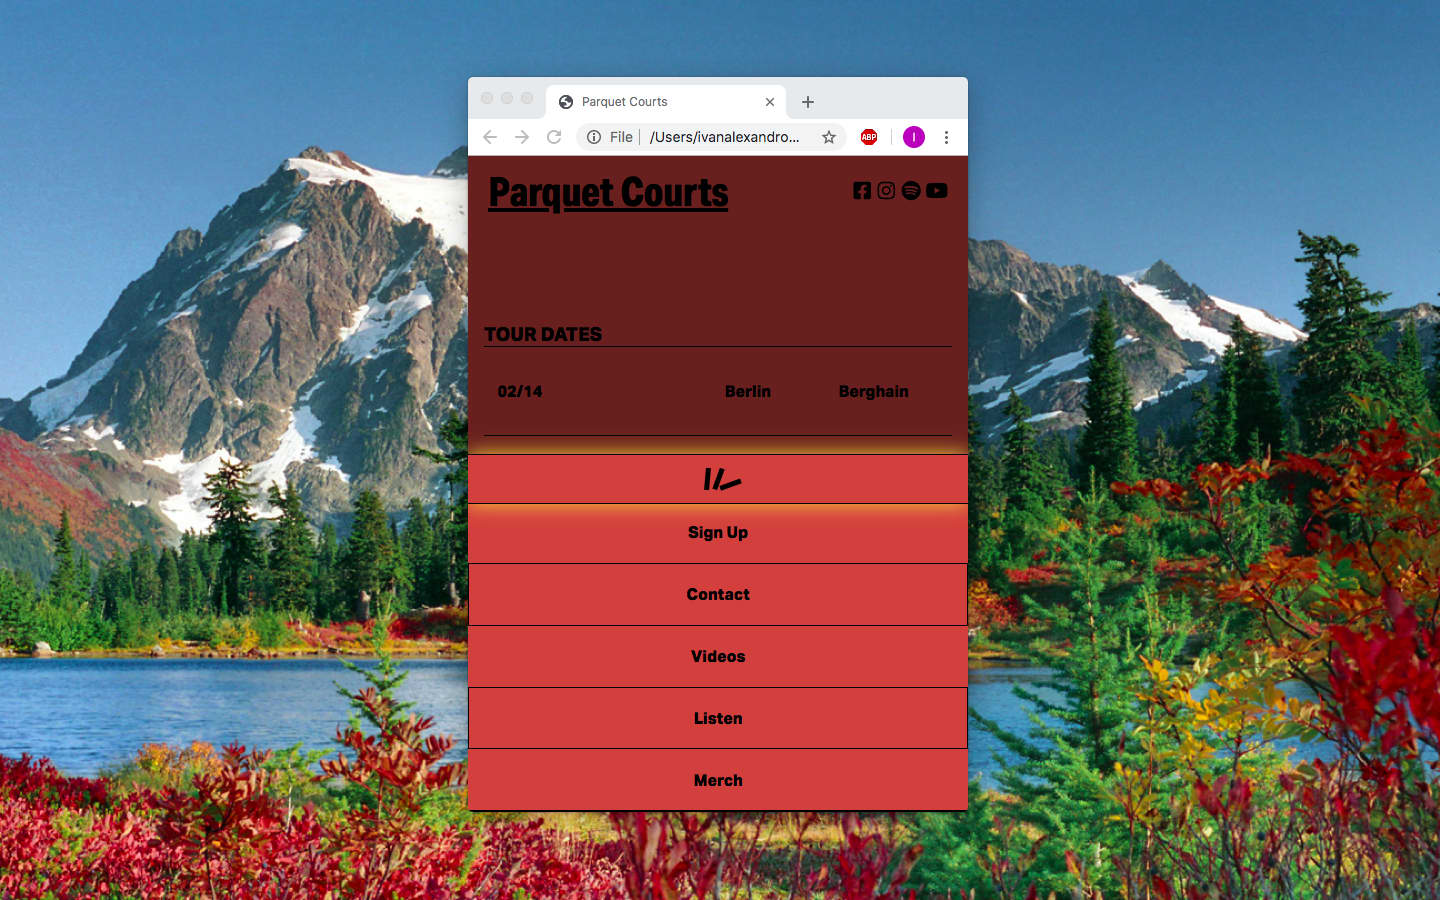 Parquet Courts (Website)